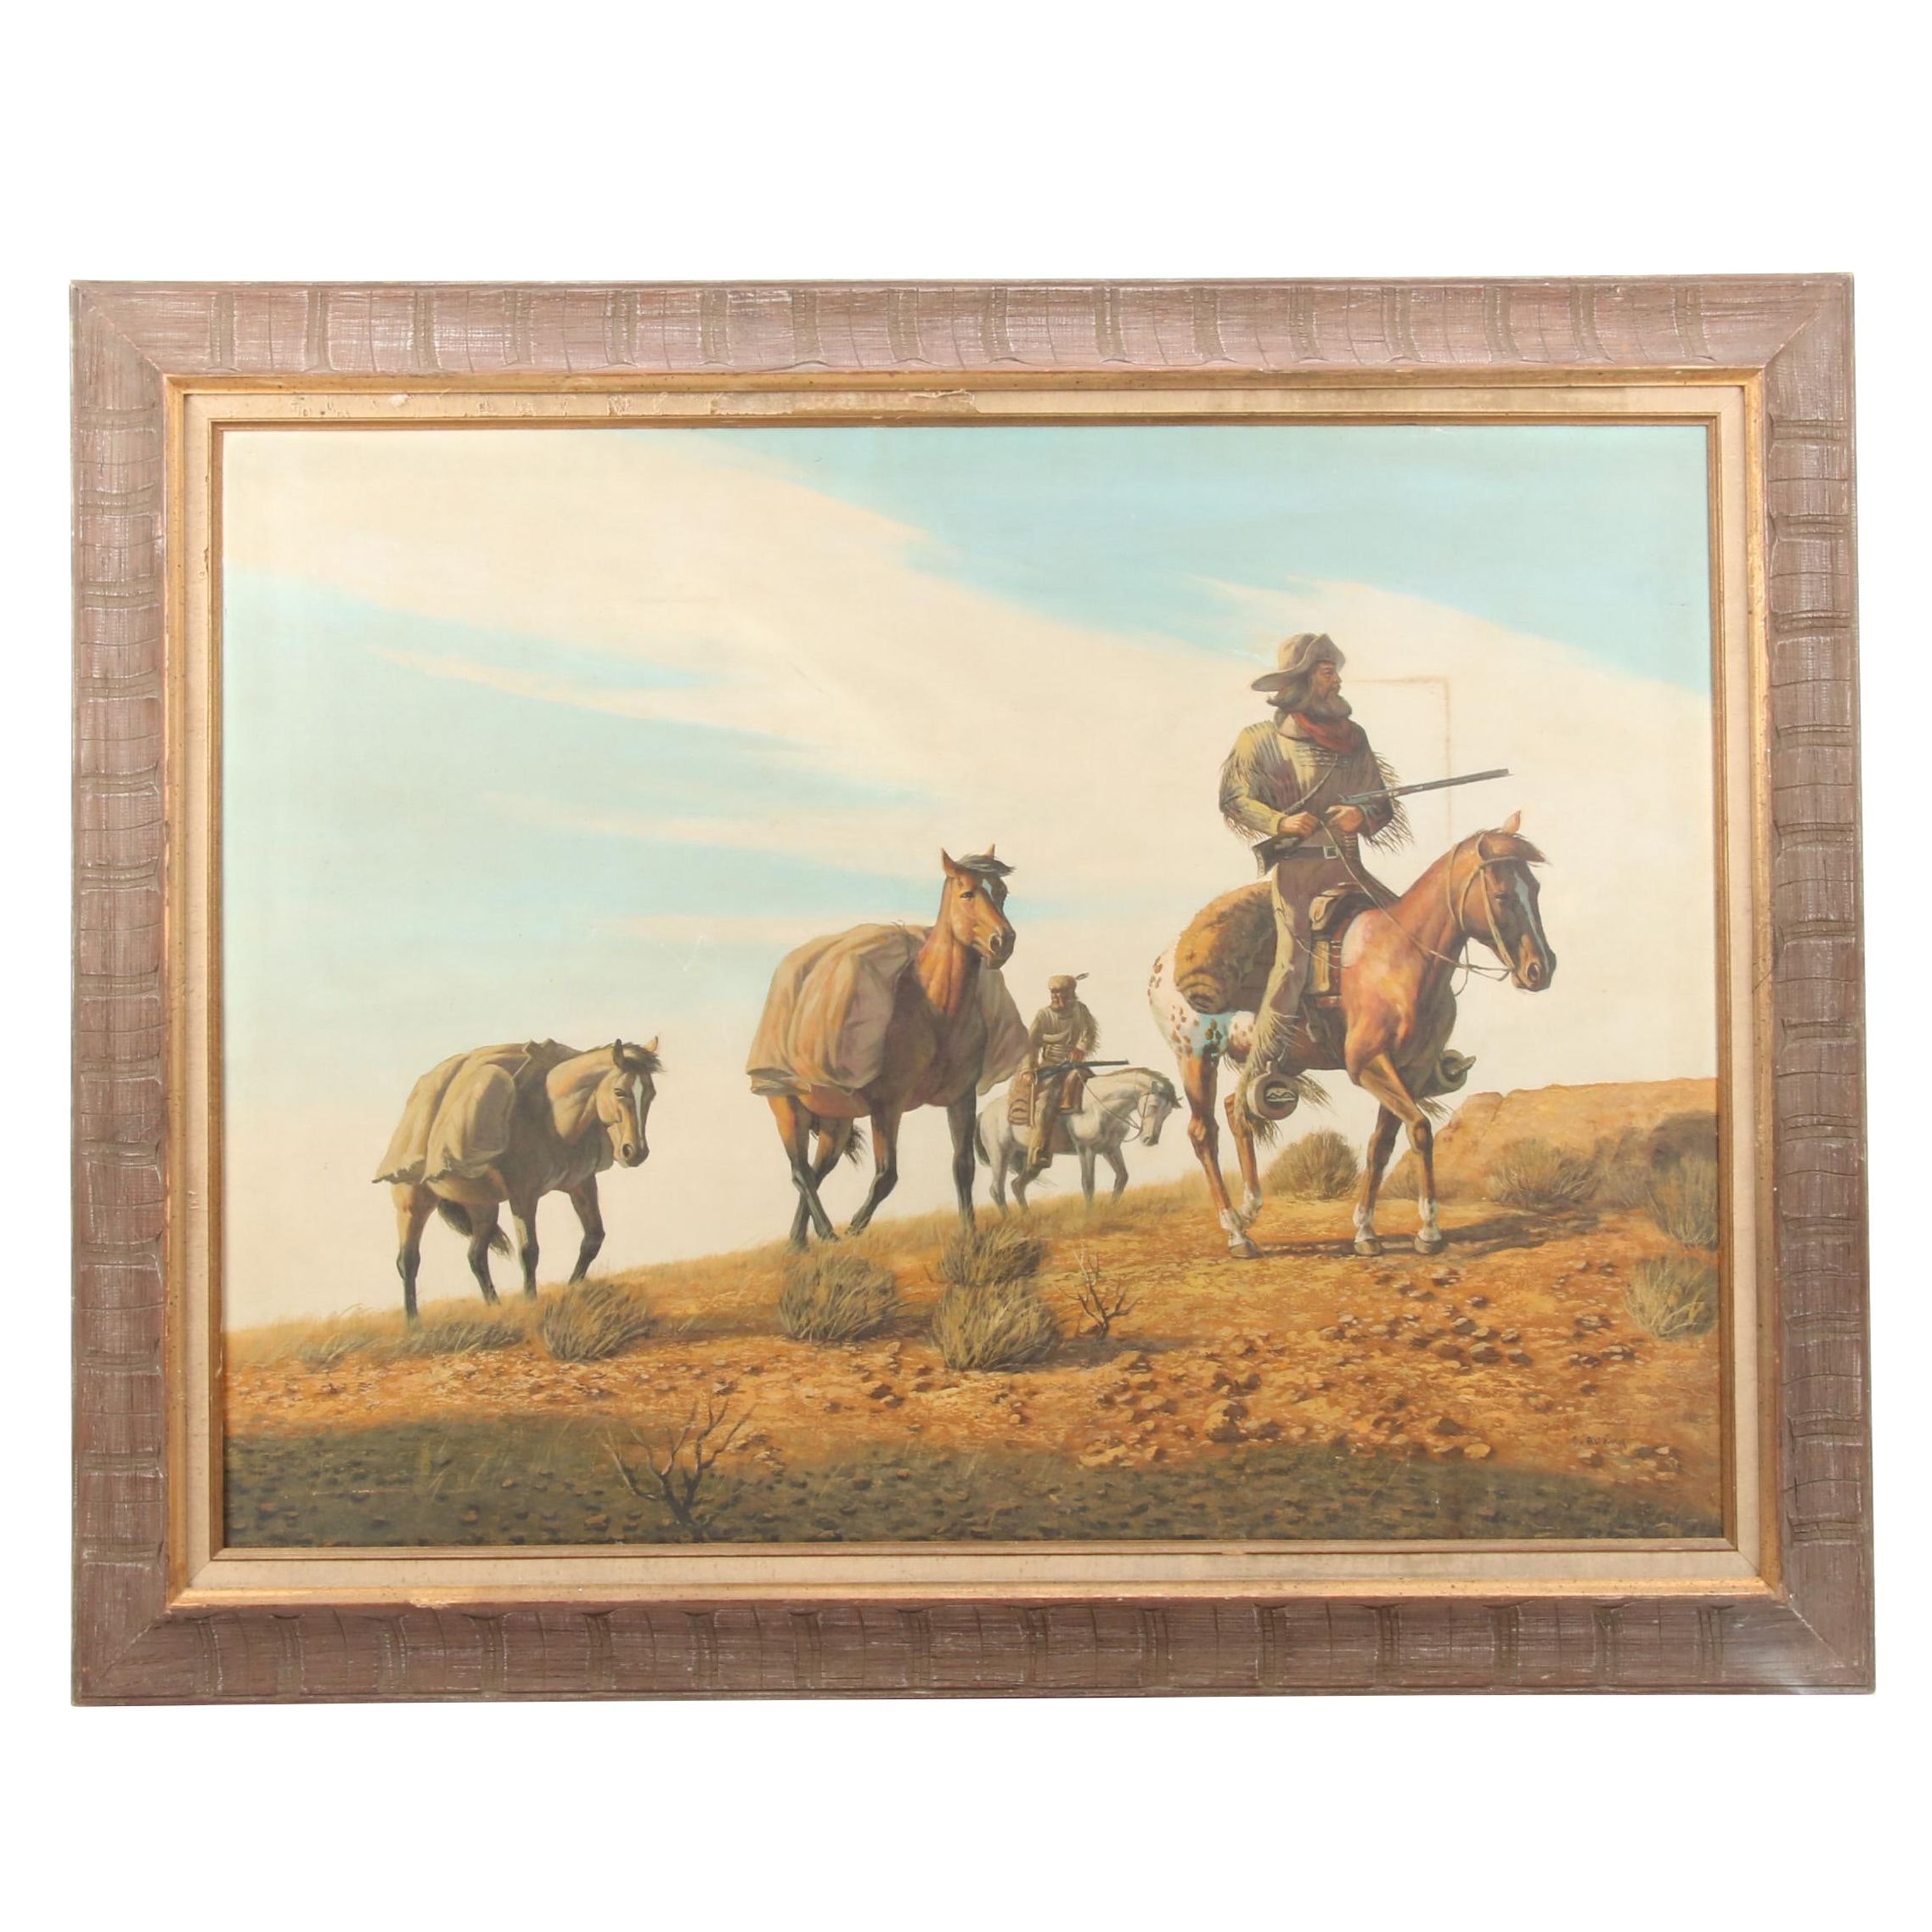 C. Quany Oil Painting of Mountain Men Leading Pack Horses